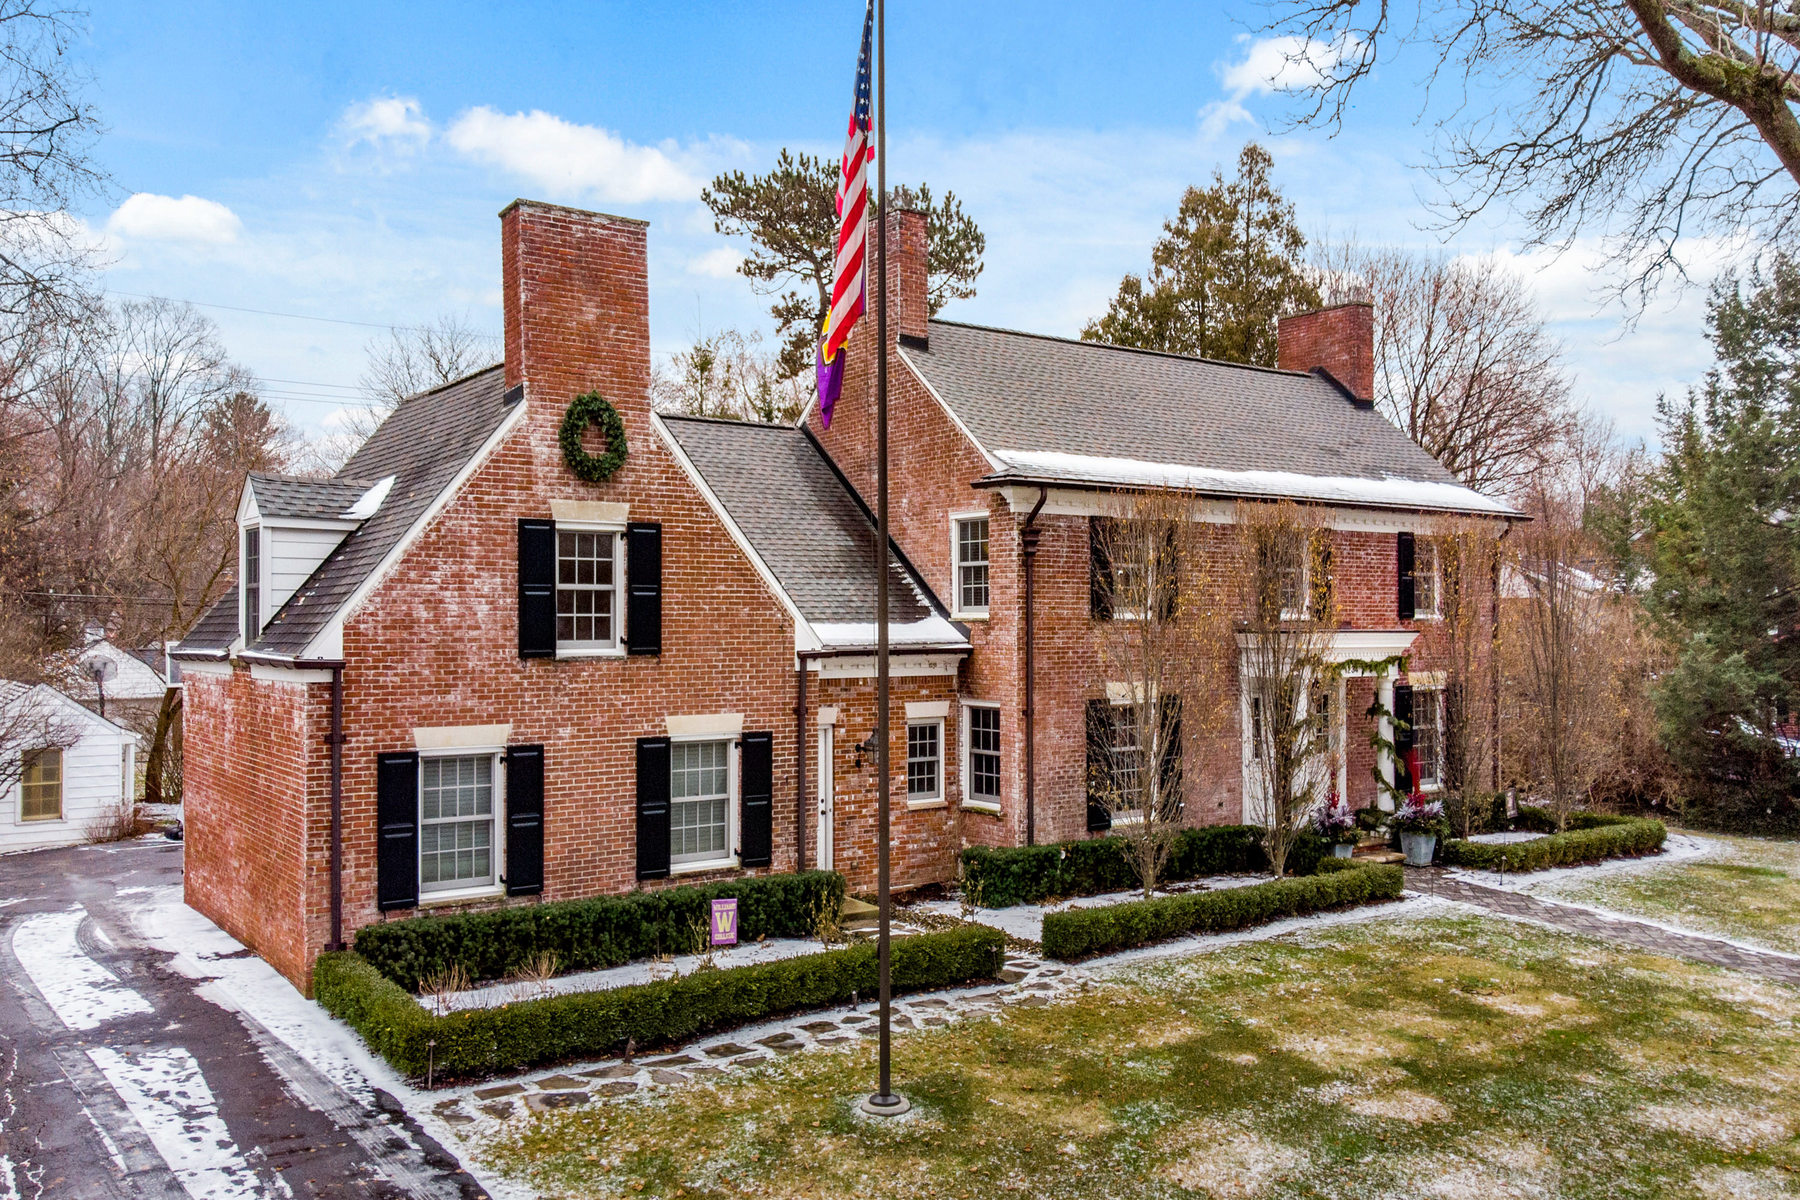 Single Family Homes for Active at Birmingham 1234 Willow Lane Birmingham, Michigan 48009 United States